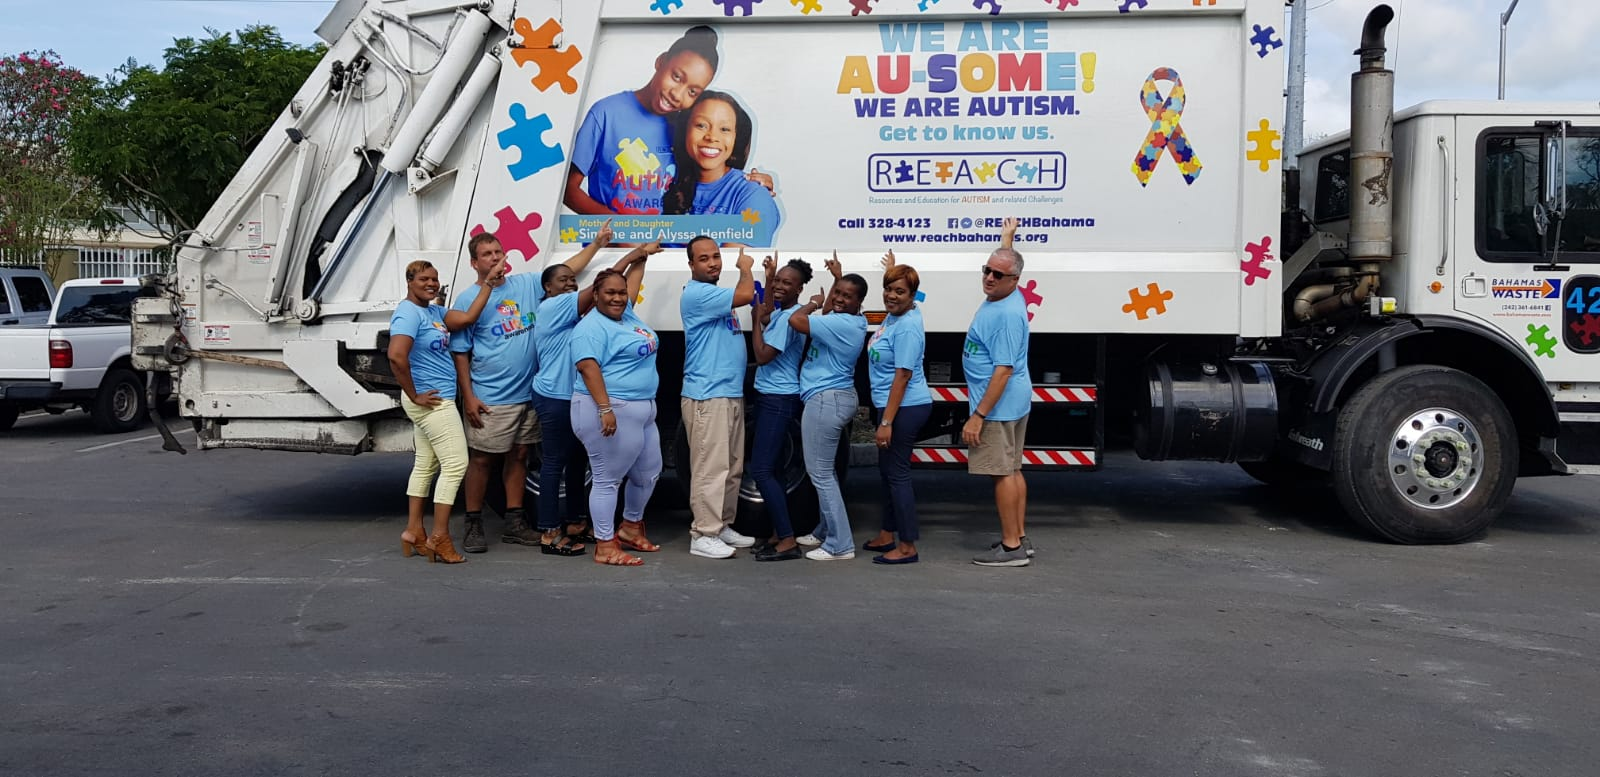 Bahamas Waste continues their support of autism awareness